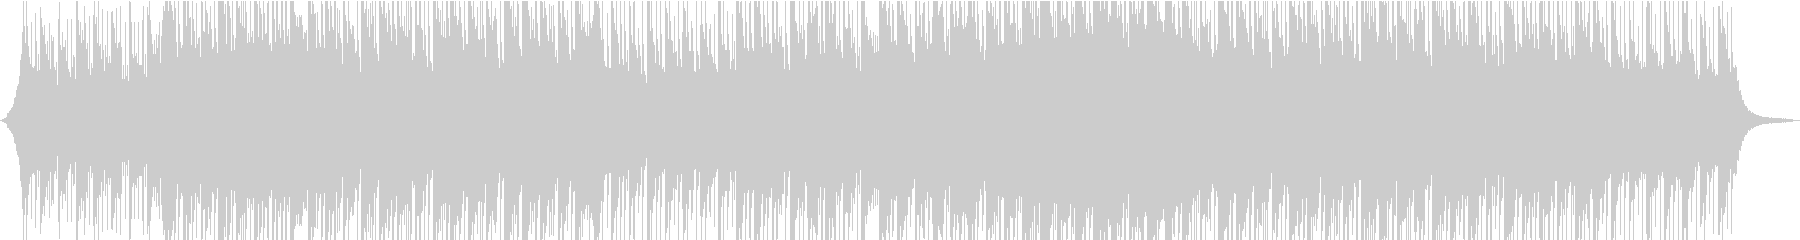 Japanese-style oriental corporate's unreproduced waveform